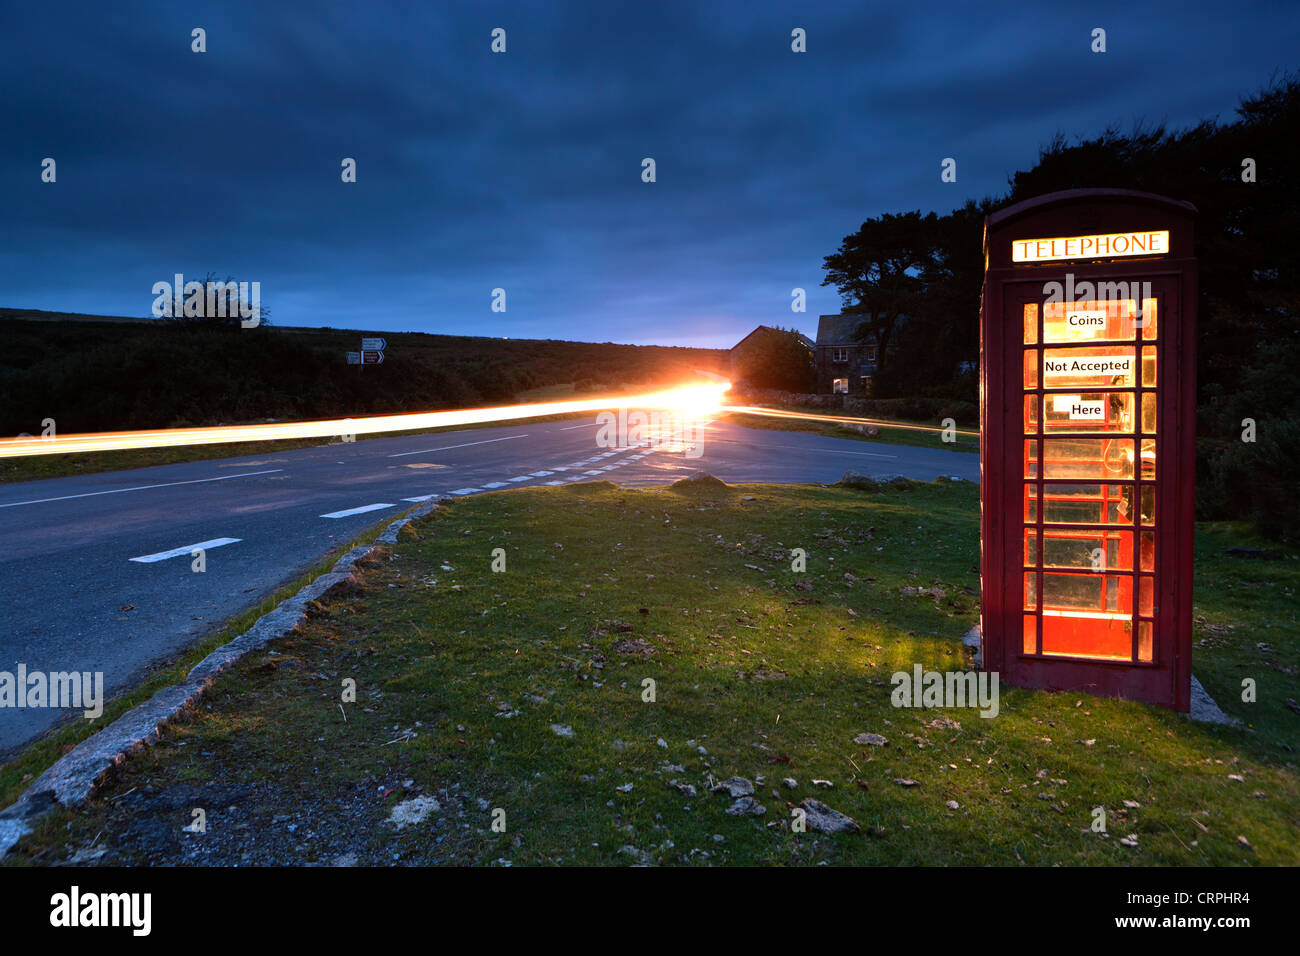 Light trail from a car passing a red telephone box by the side of a road in Dartmoor National Park. - Stock Image